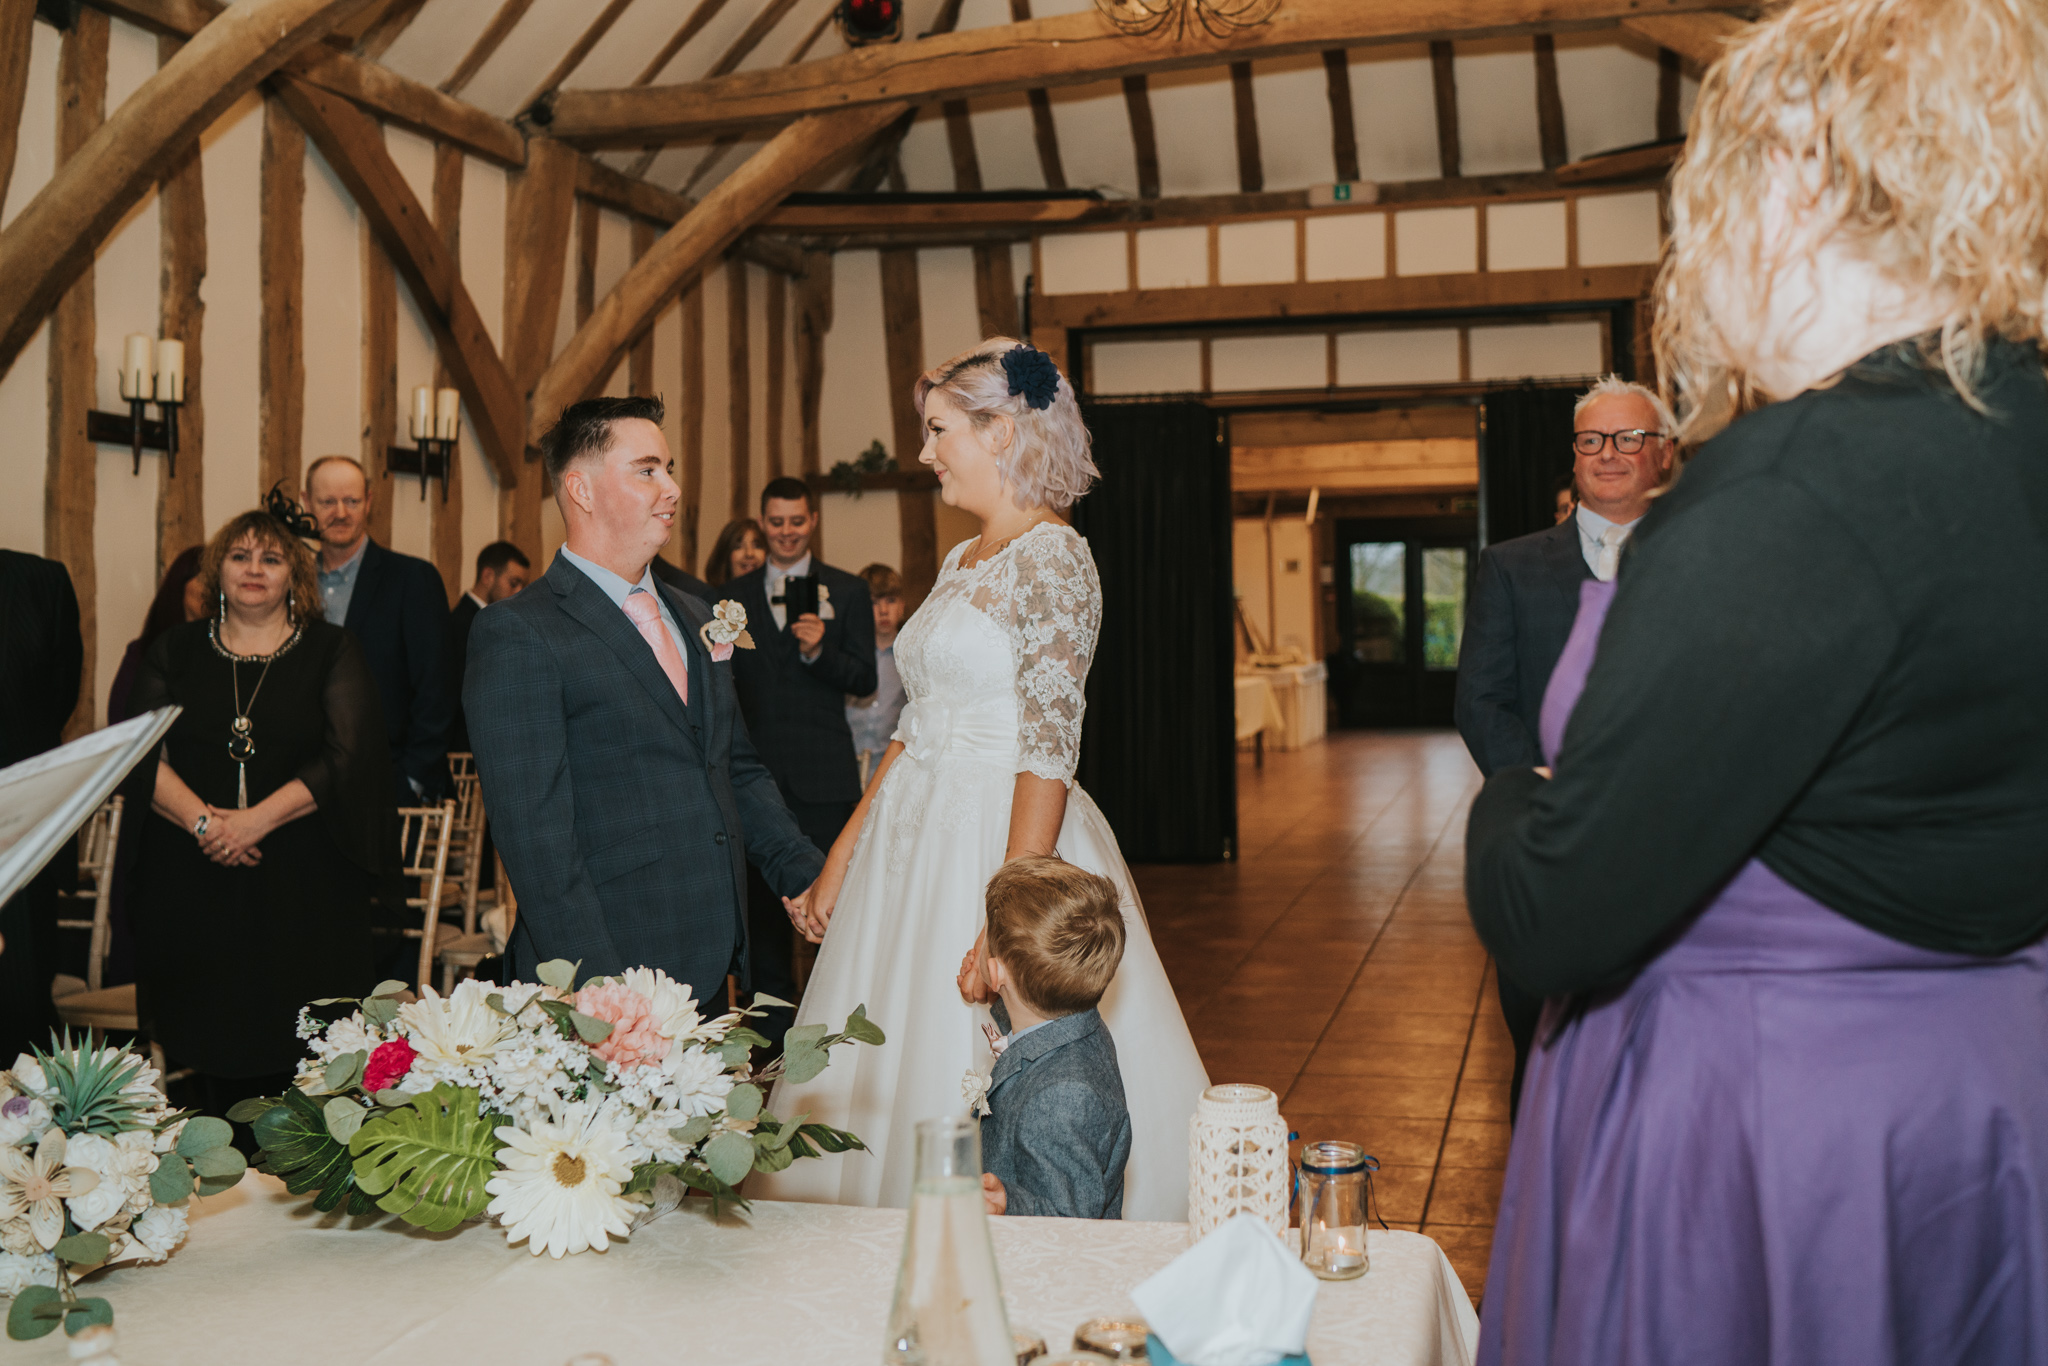 rhia-james-rustic-crabbs-barn-vintage-50s-retro-wedding-grace-elizabeth-colchester-essex-alternative-relaxed-wedding-family-photography-devon-suffolk-norfolk-essex (72 of 138).jpg